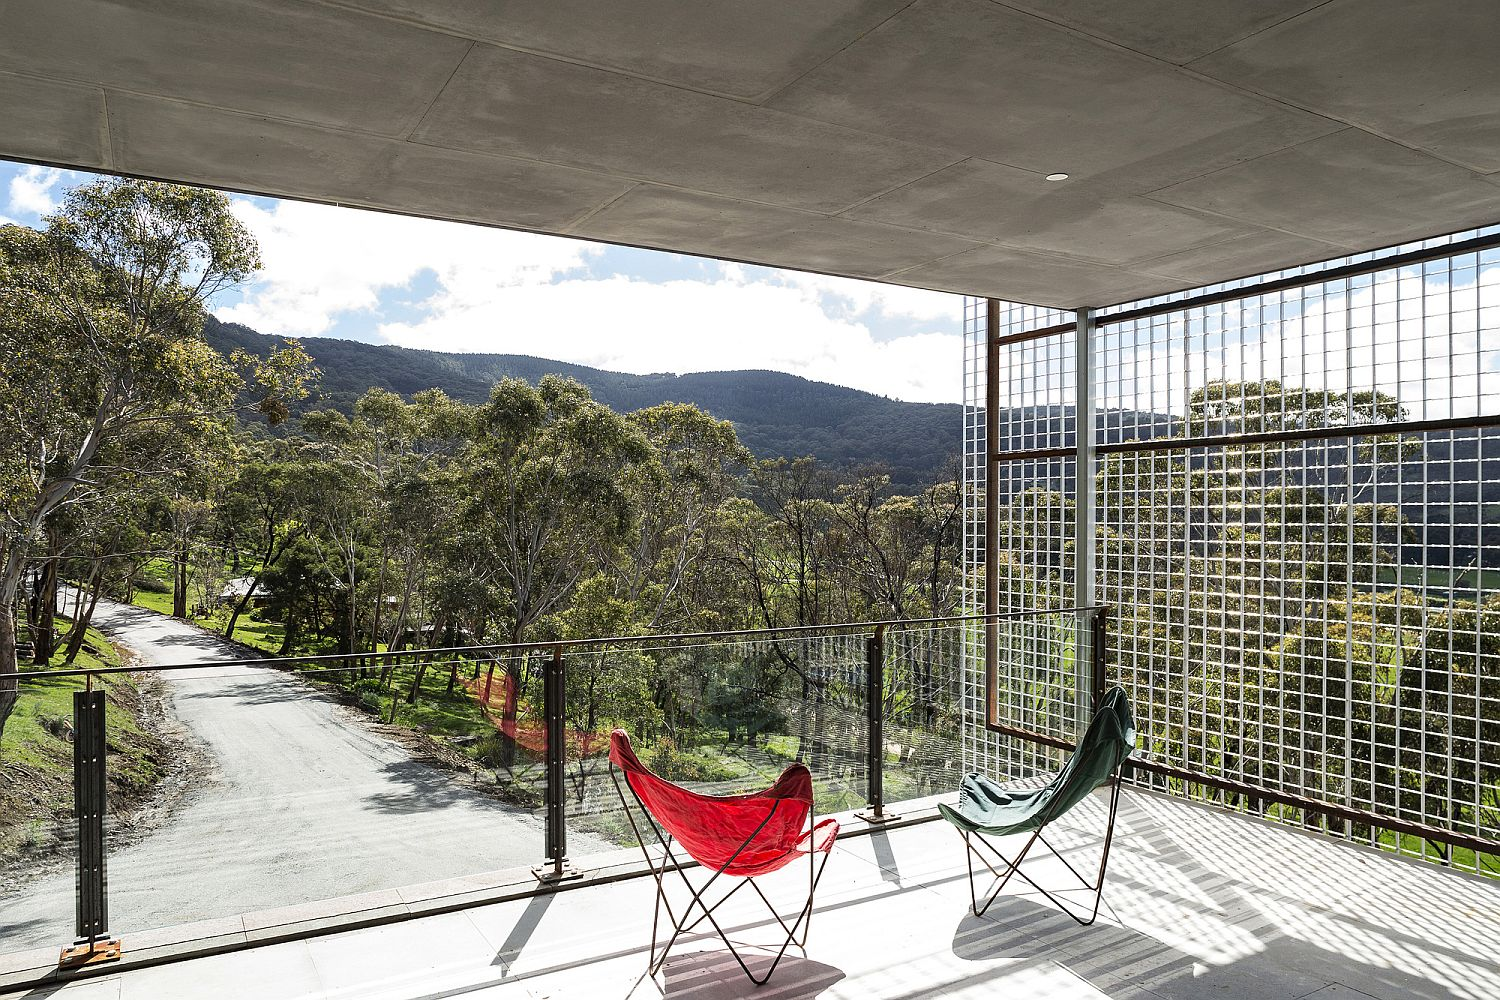 Rooftop deck of the Aussie home with 360 degree views of the bushland